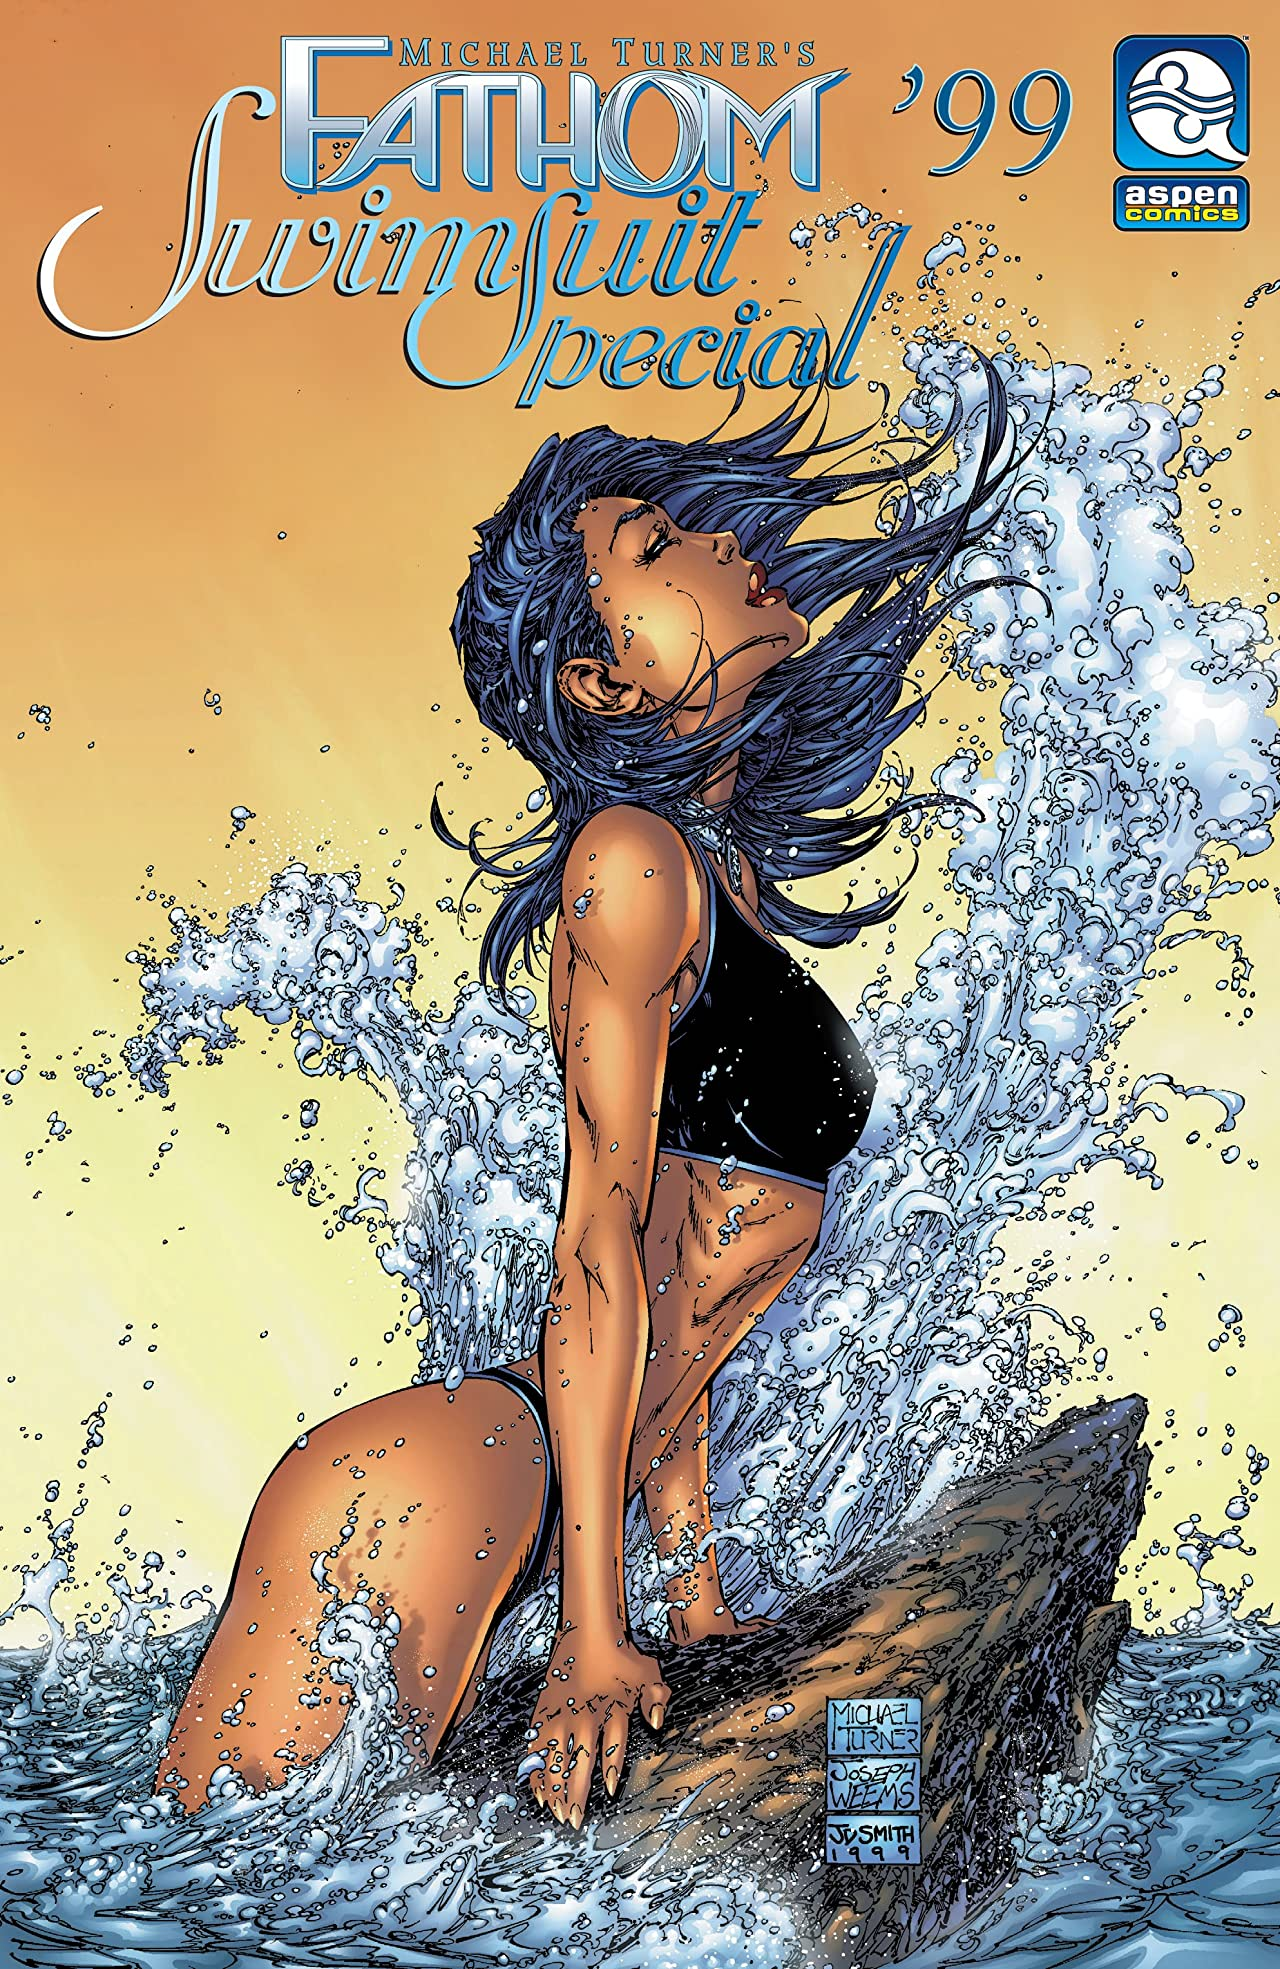 Michael Turner's Fathom: Swimsuit 1999